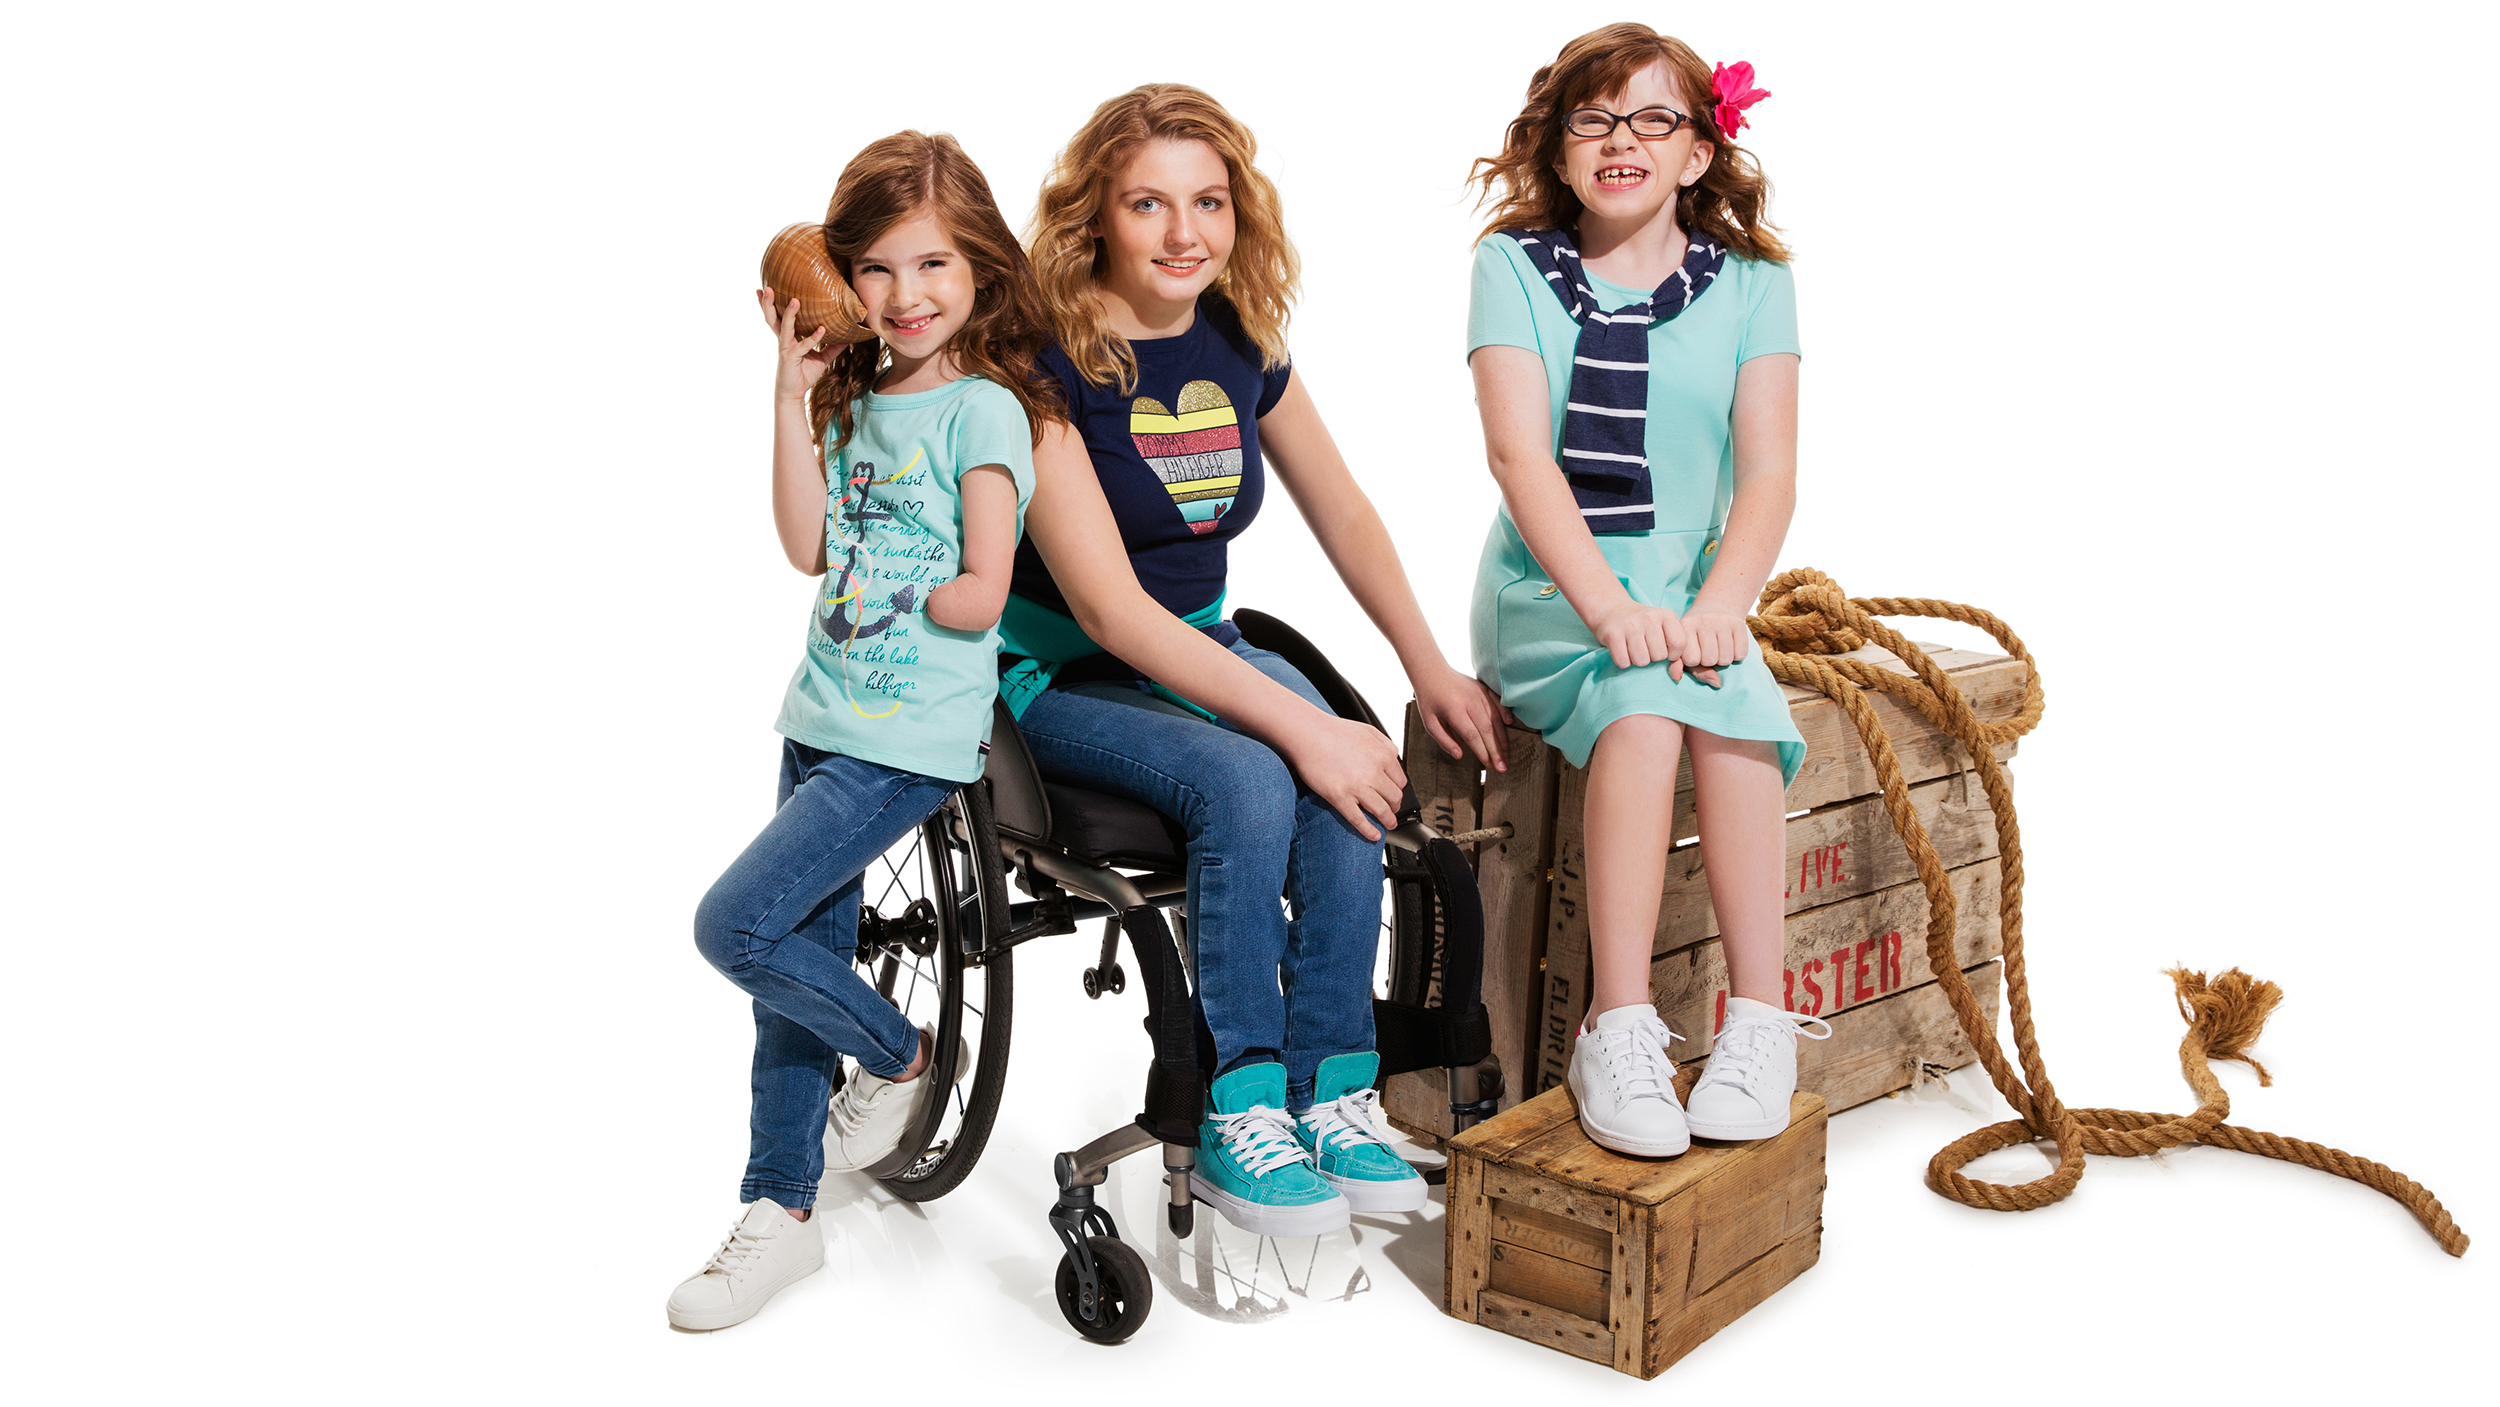 Tommy Hilfiger launches inclusive clothing line for kids with